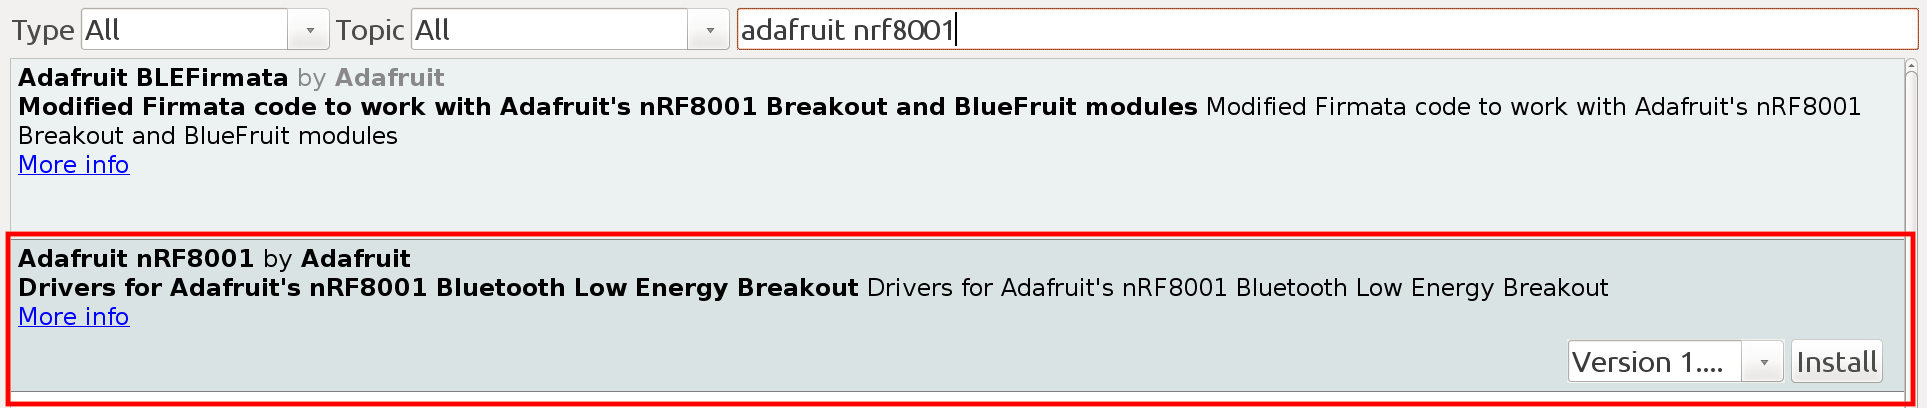 adafruit_products_nrf8001.png